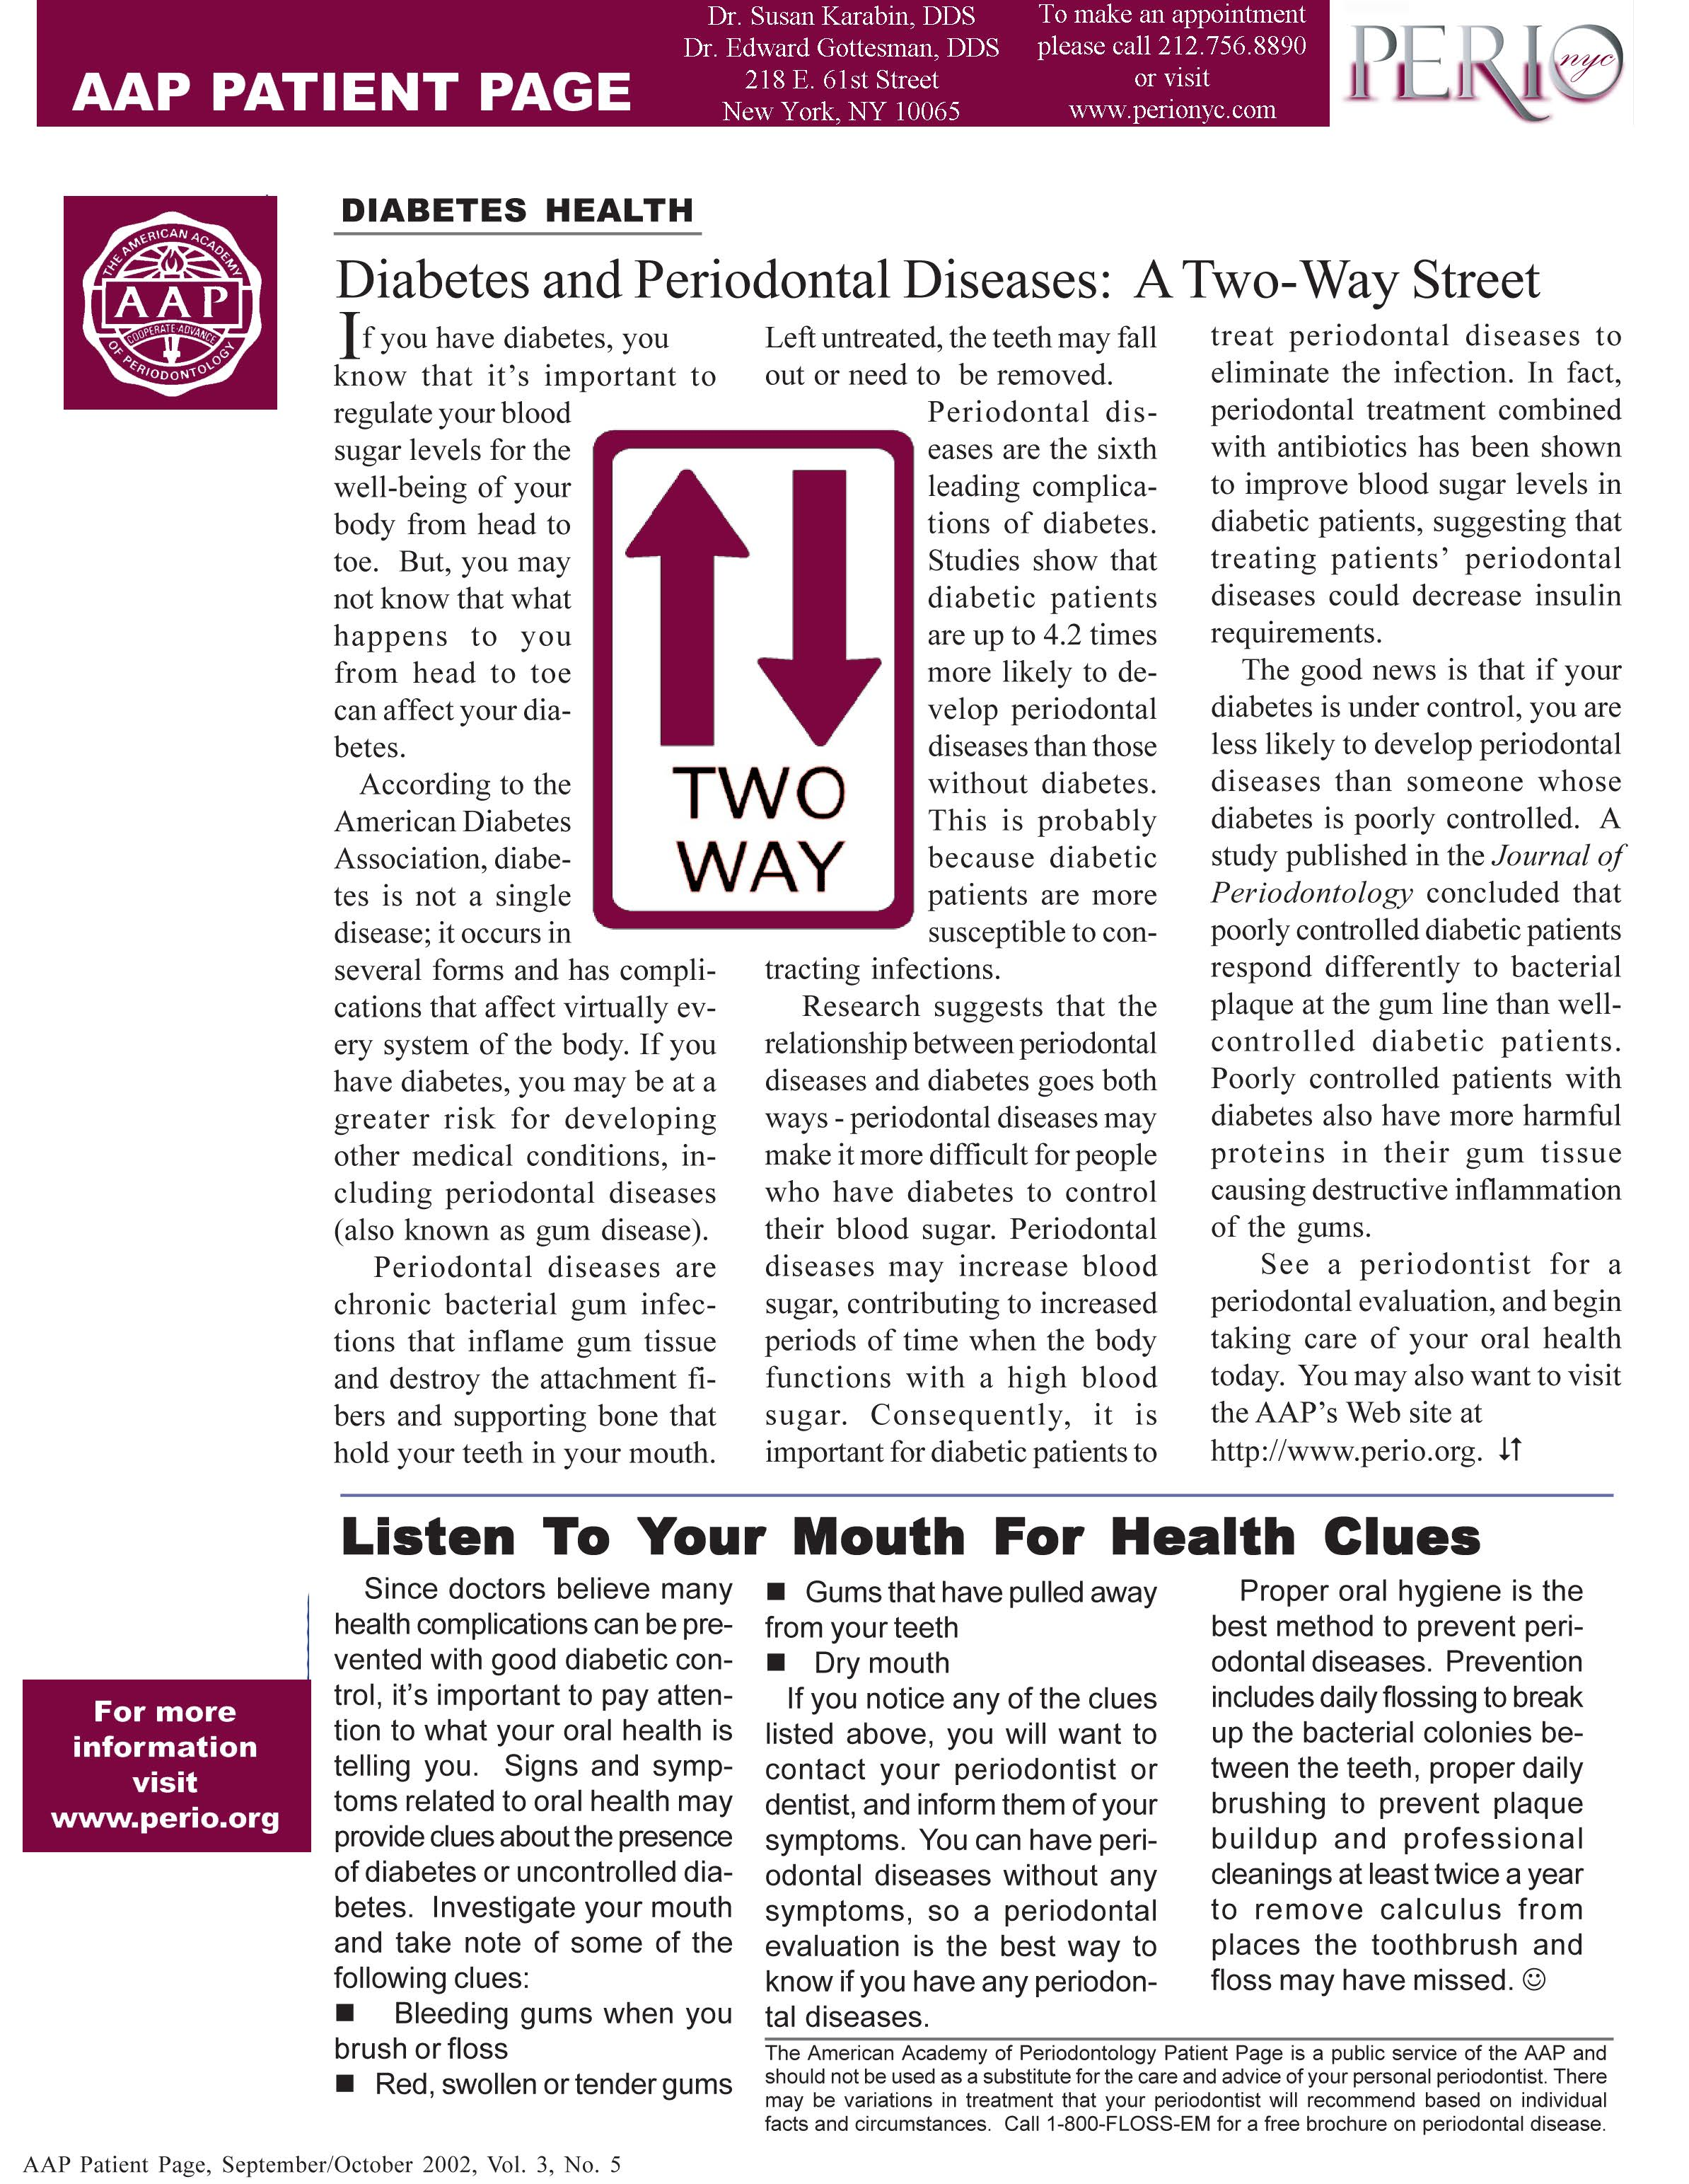 Diabetes and Periodontal Disease: A Two-Way Street